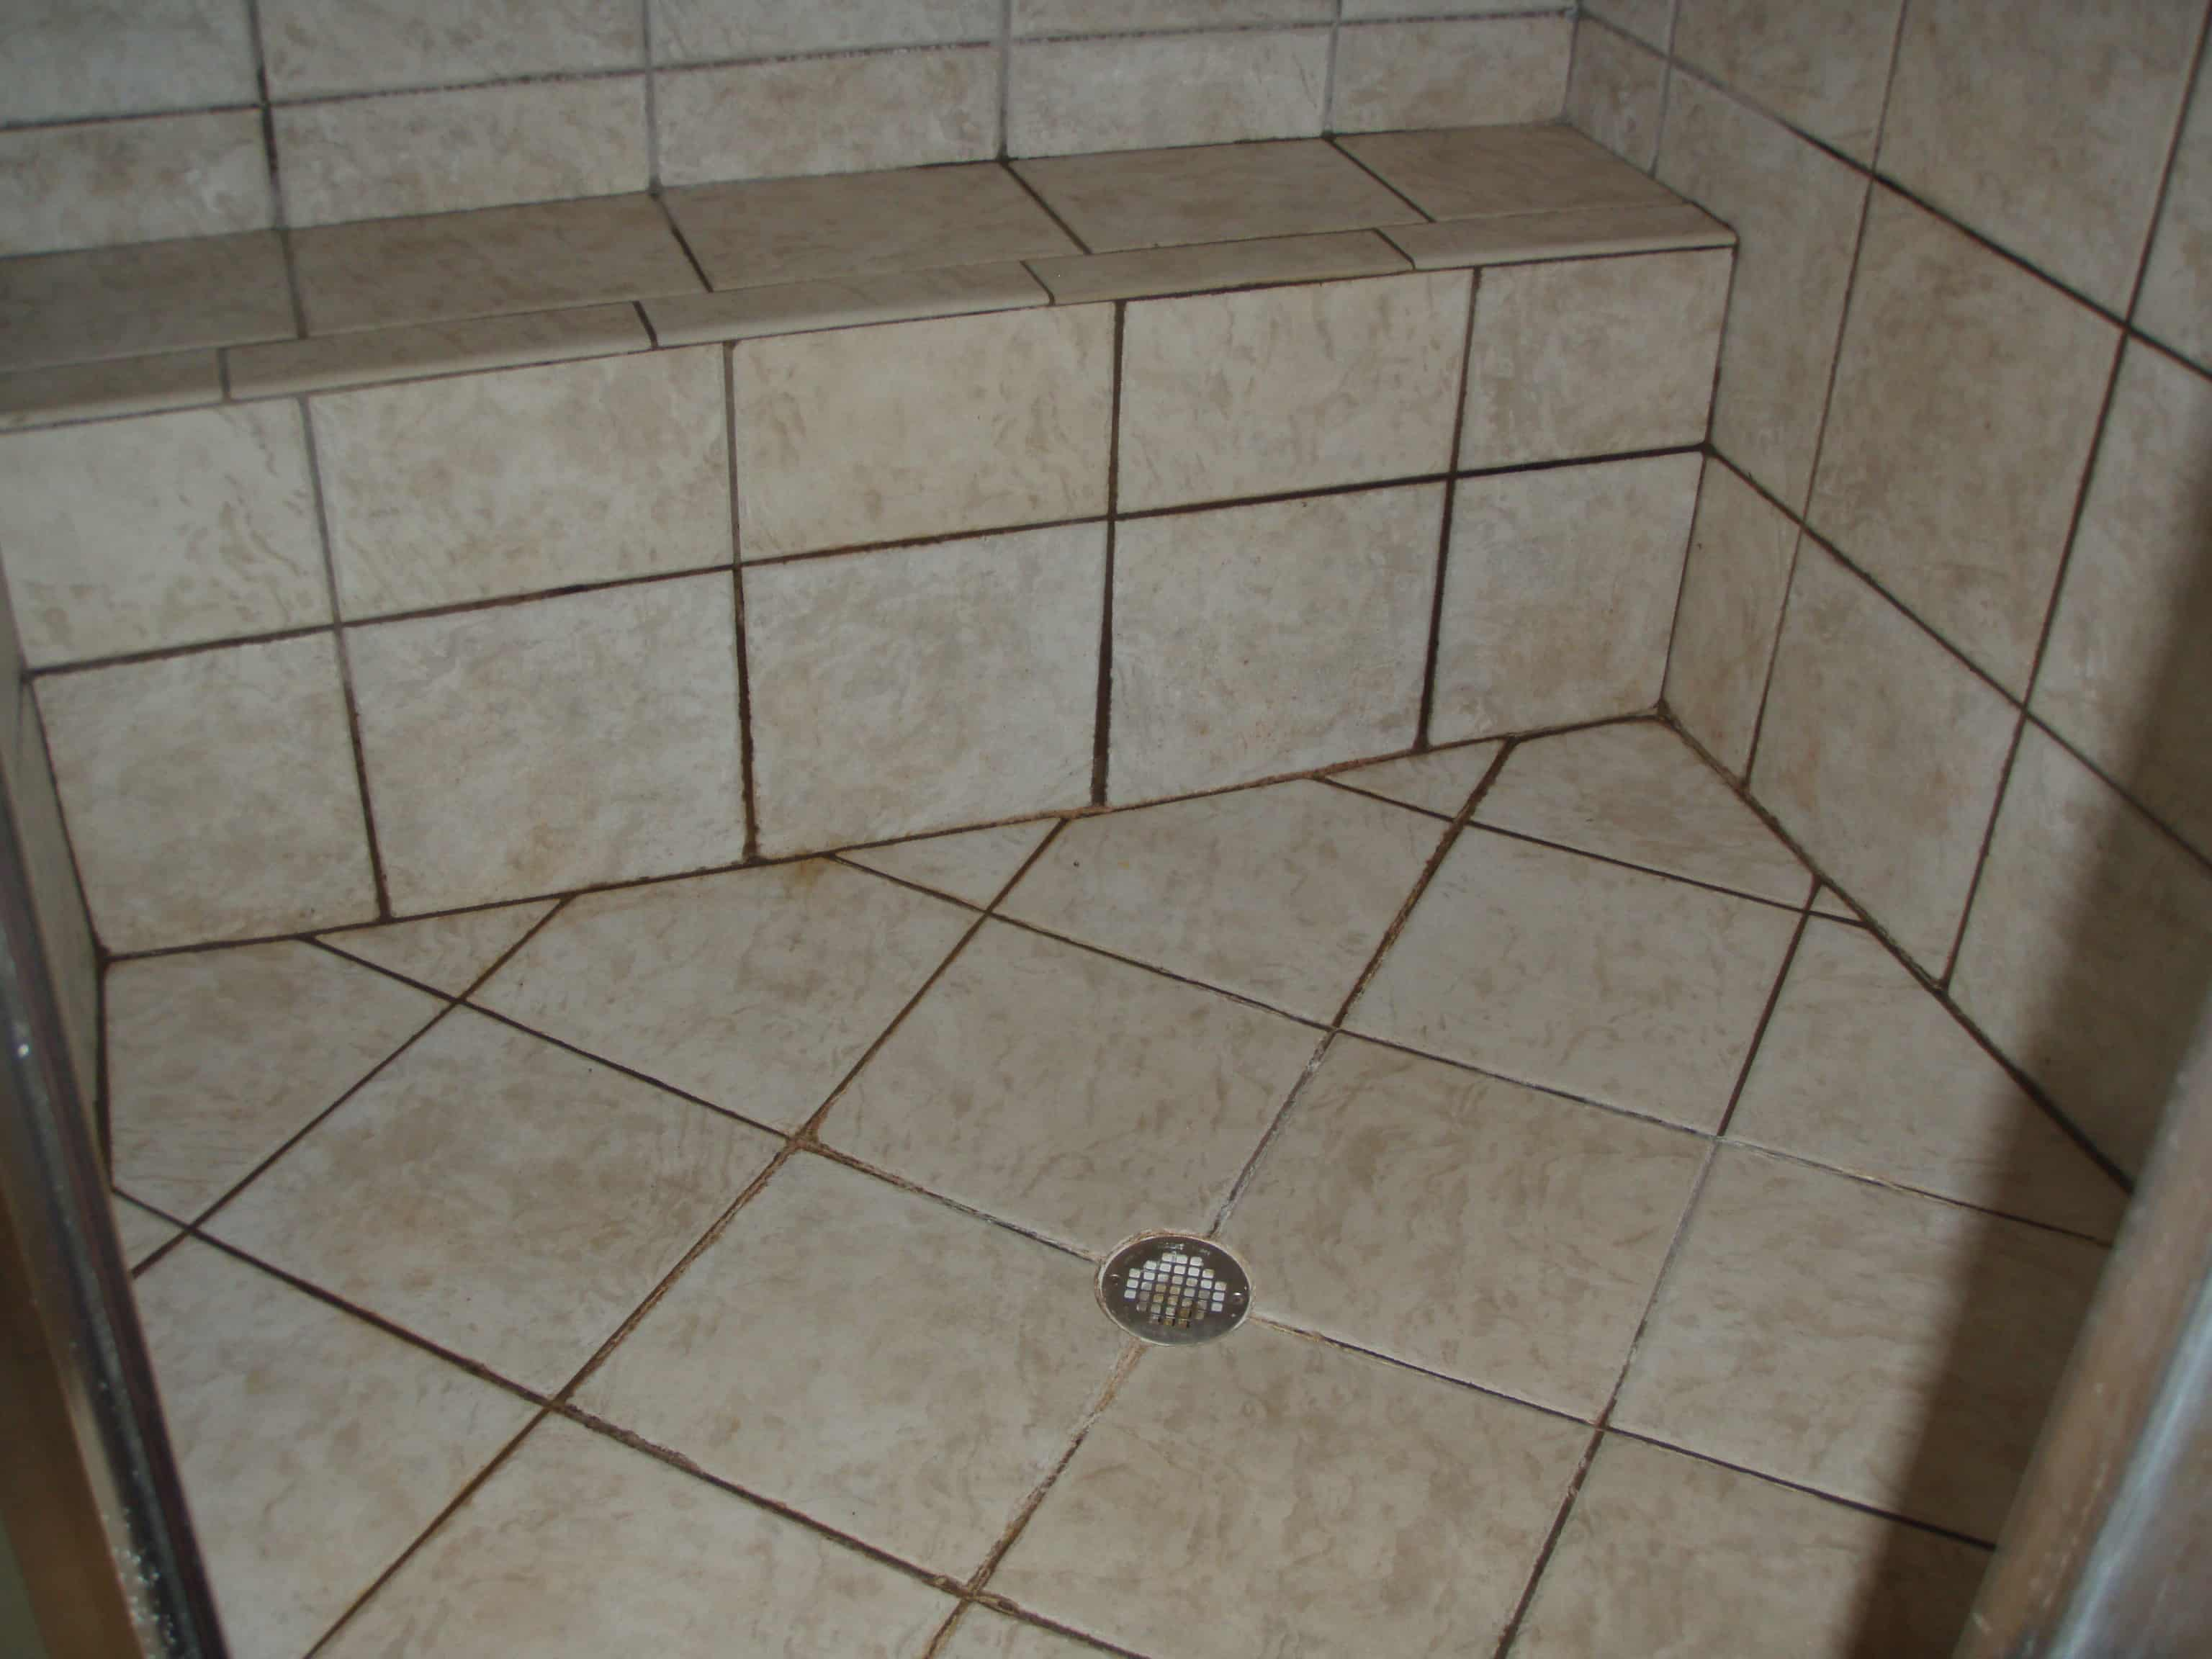 Tile and Grout Cleaning cape cod. - DryServ